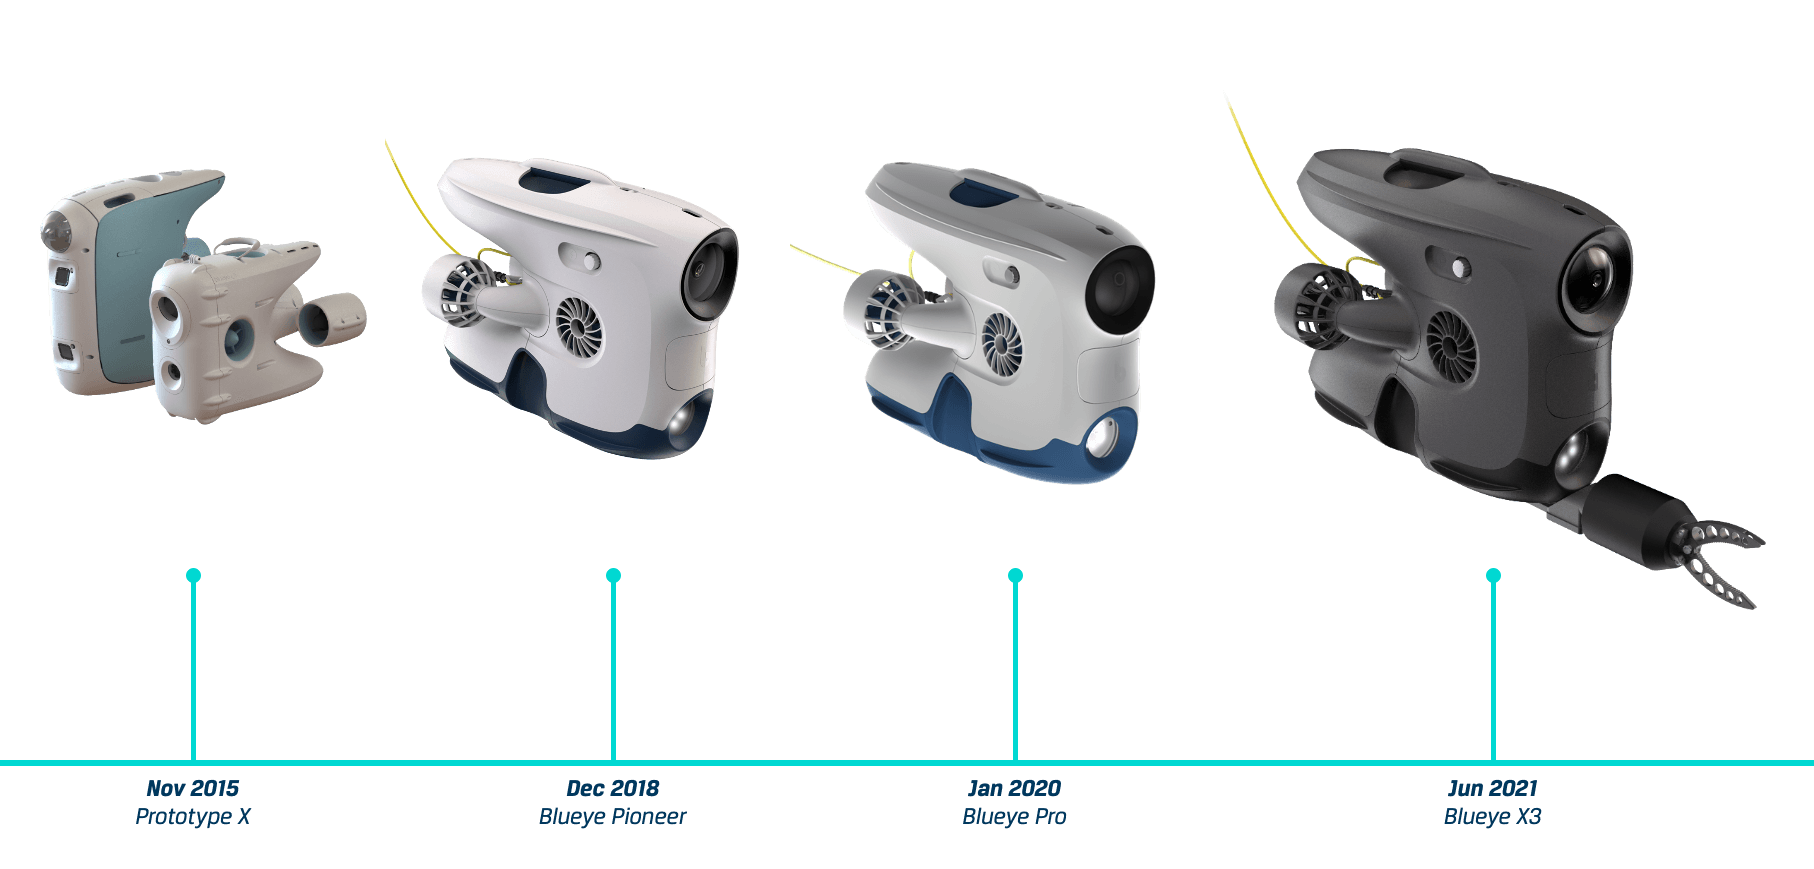 Timeline of Blueye models from PX to X3.